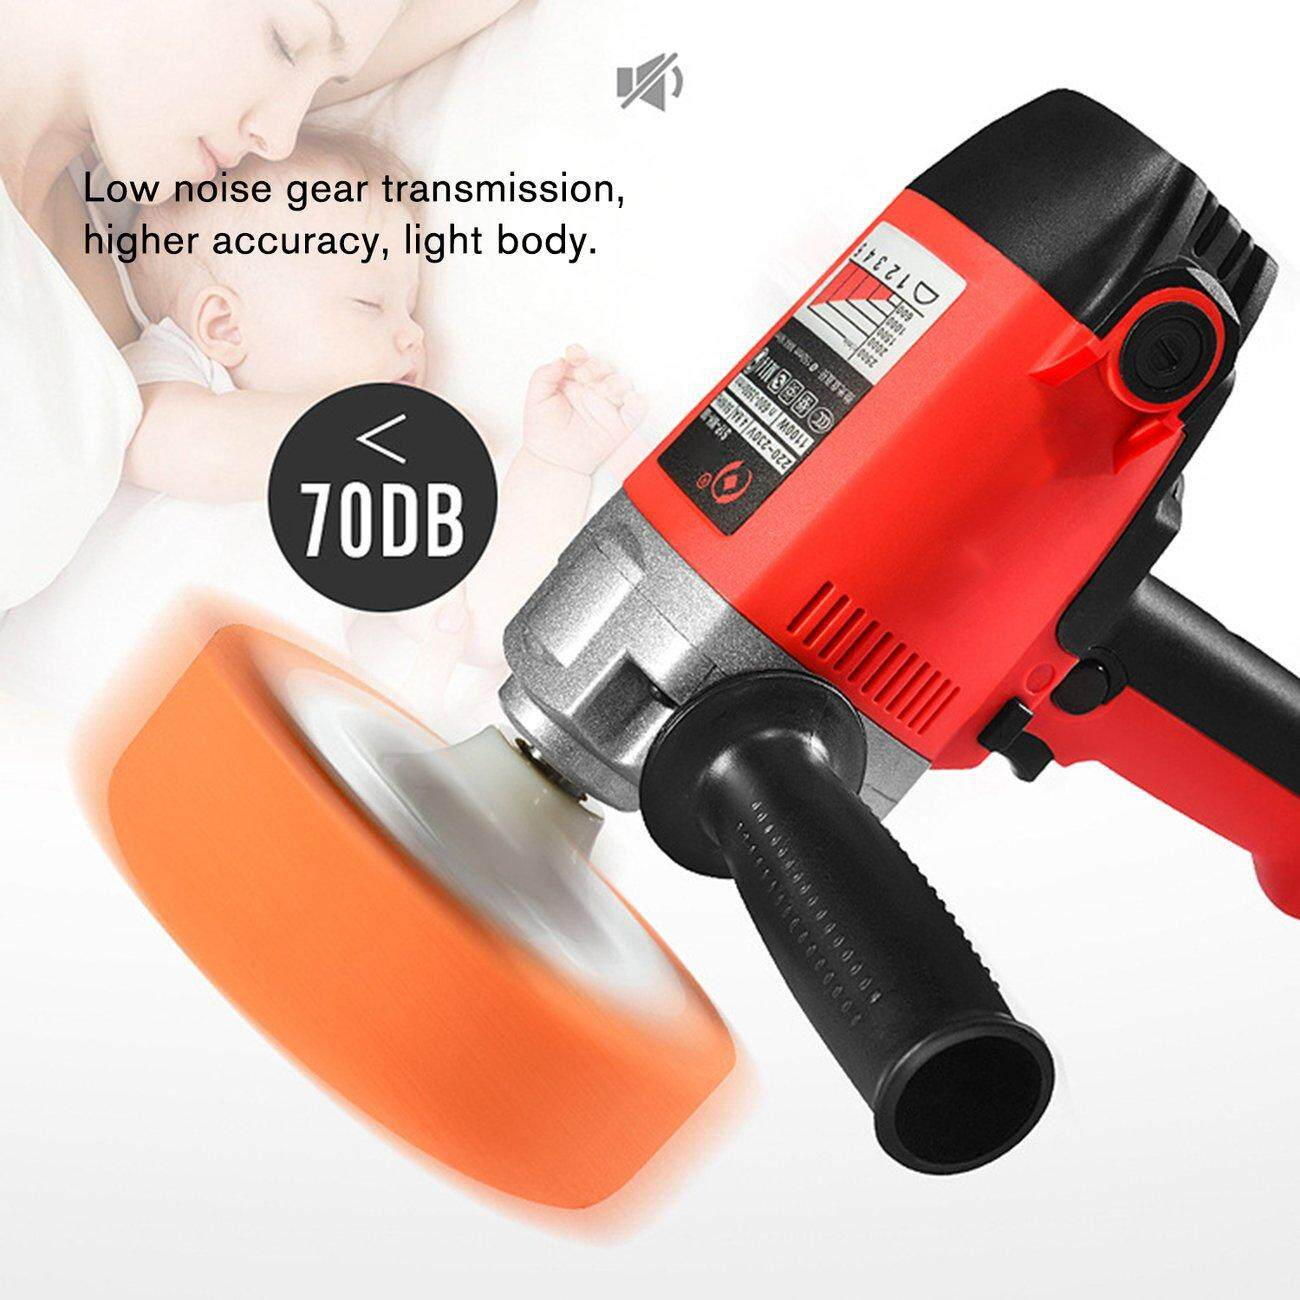 Hot Deals Car Grinder Polisher 2500RPM 5 Speed Polishing Sanding Waxing Power Machine